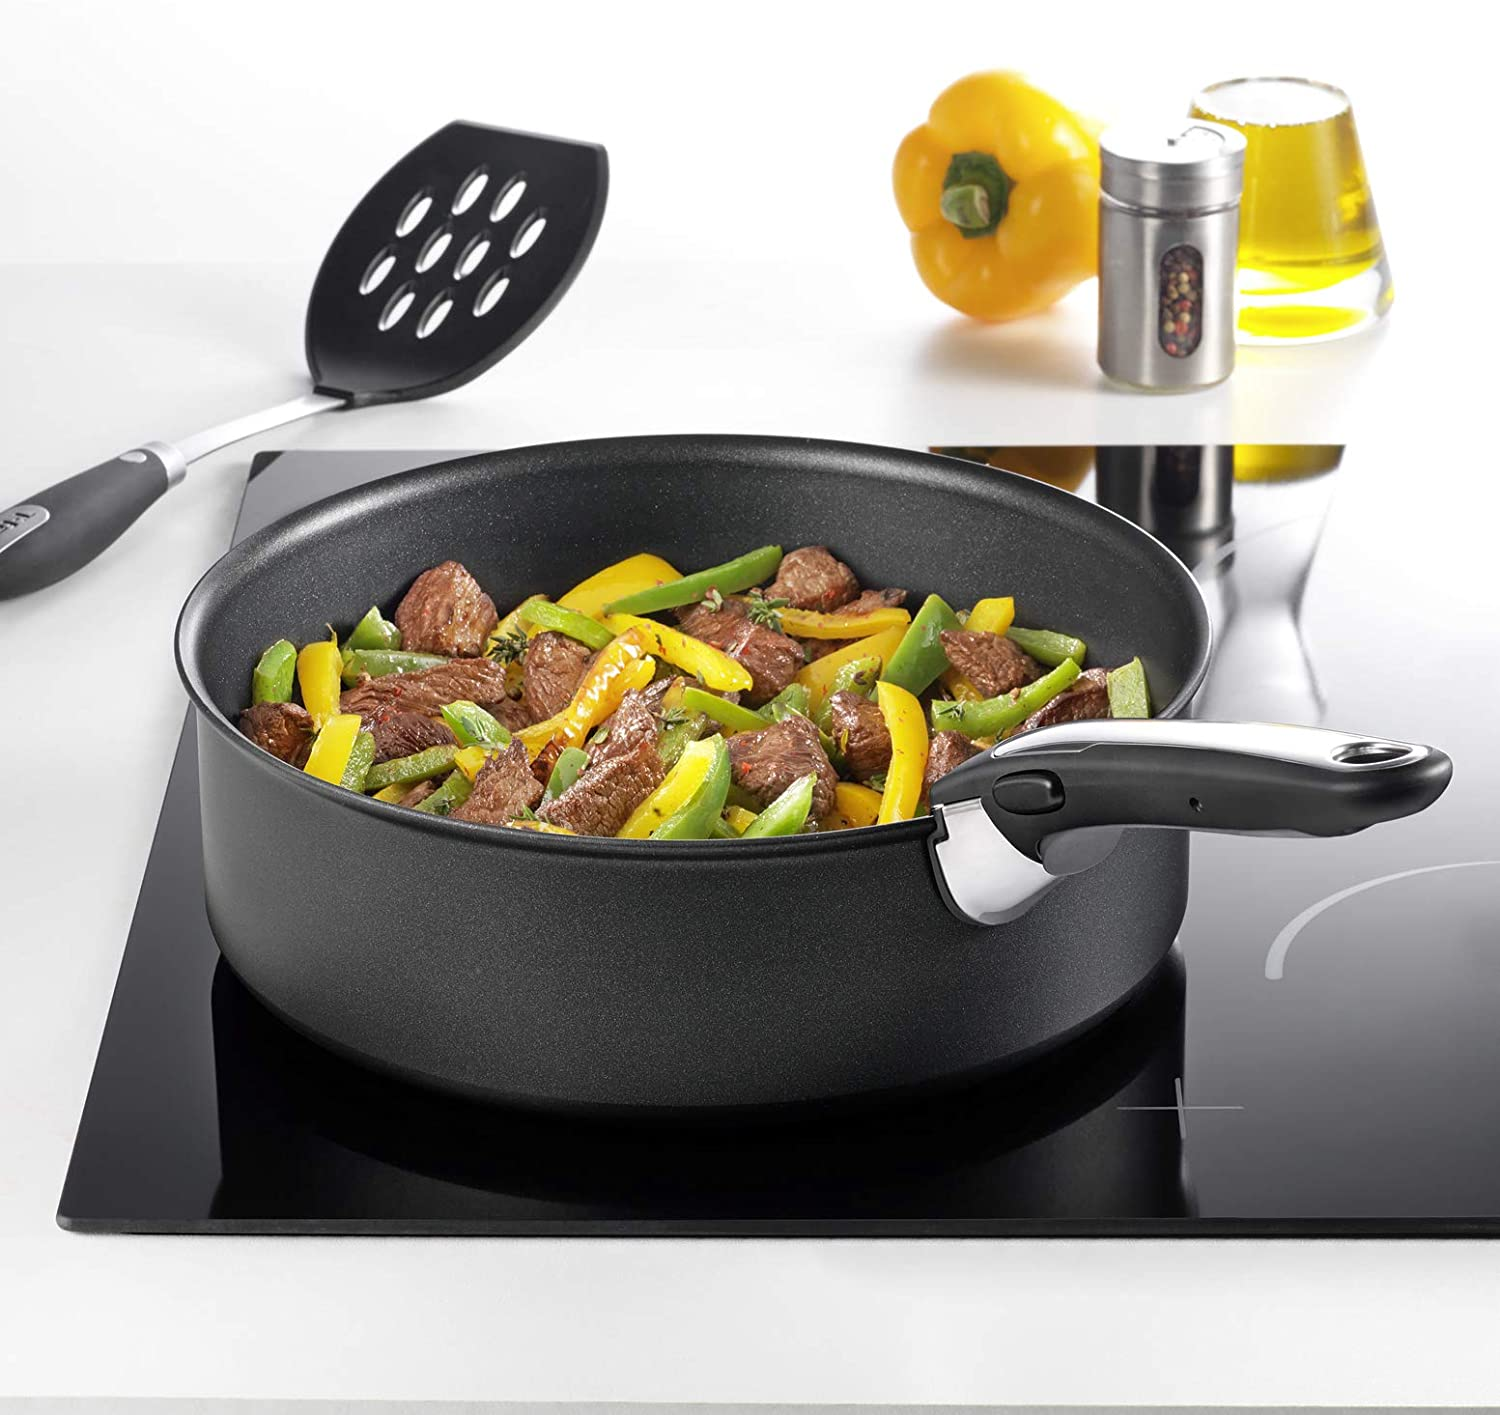 Black Tefal Ingenio Removable Handle with Stainless Steel Insert